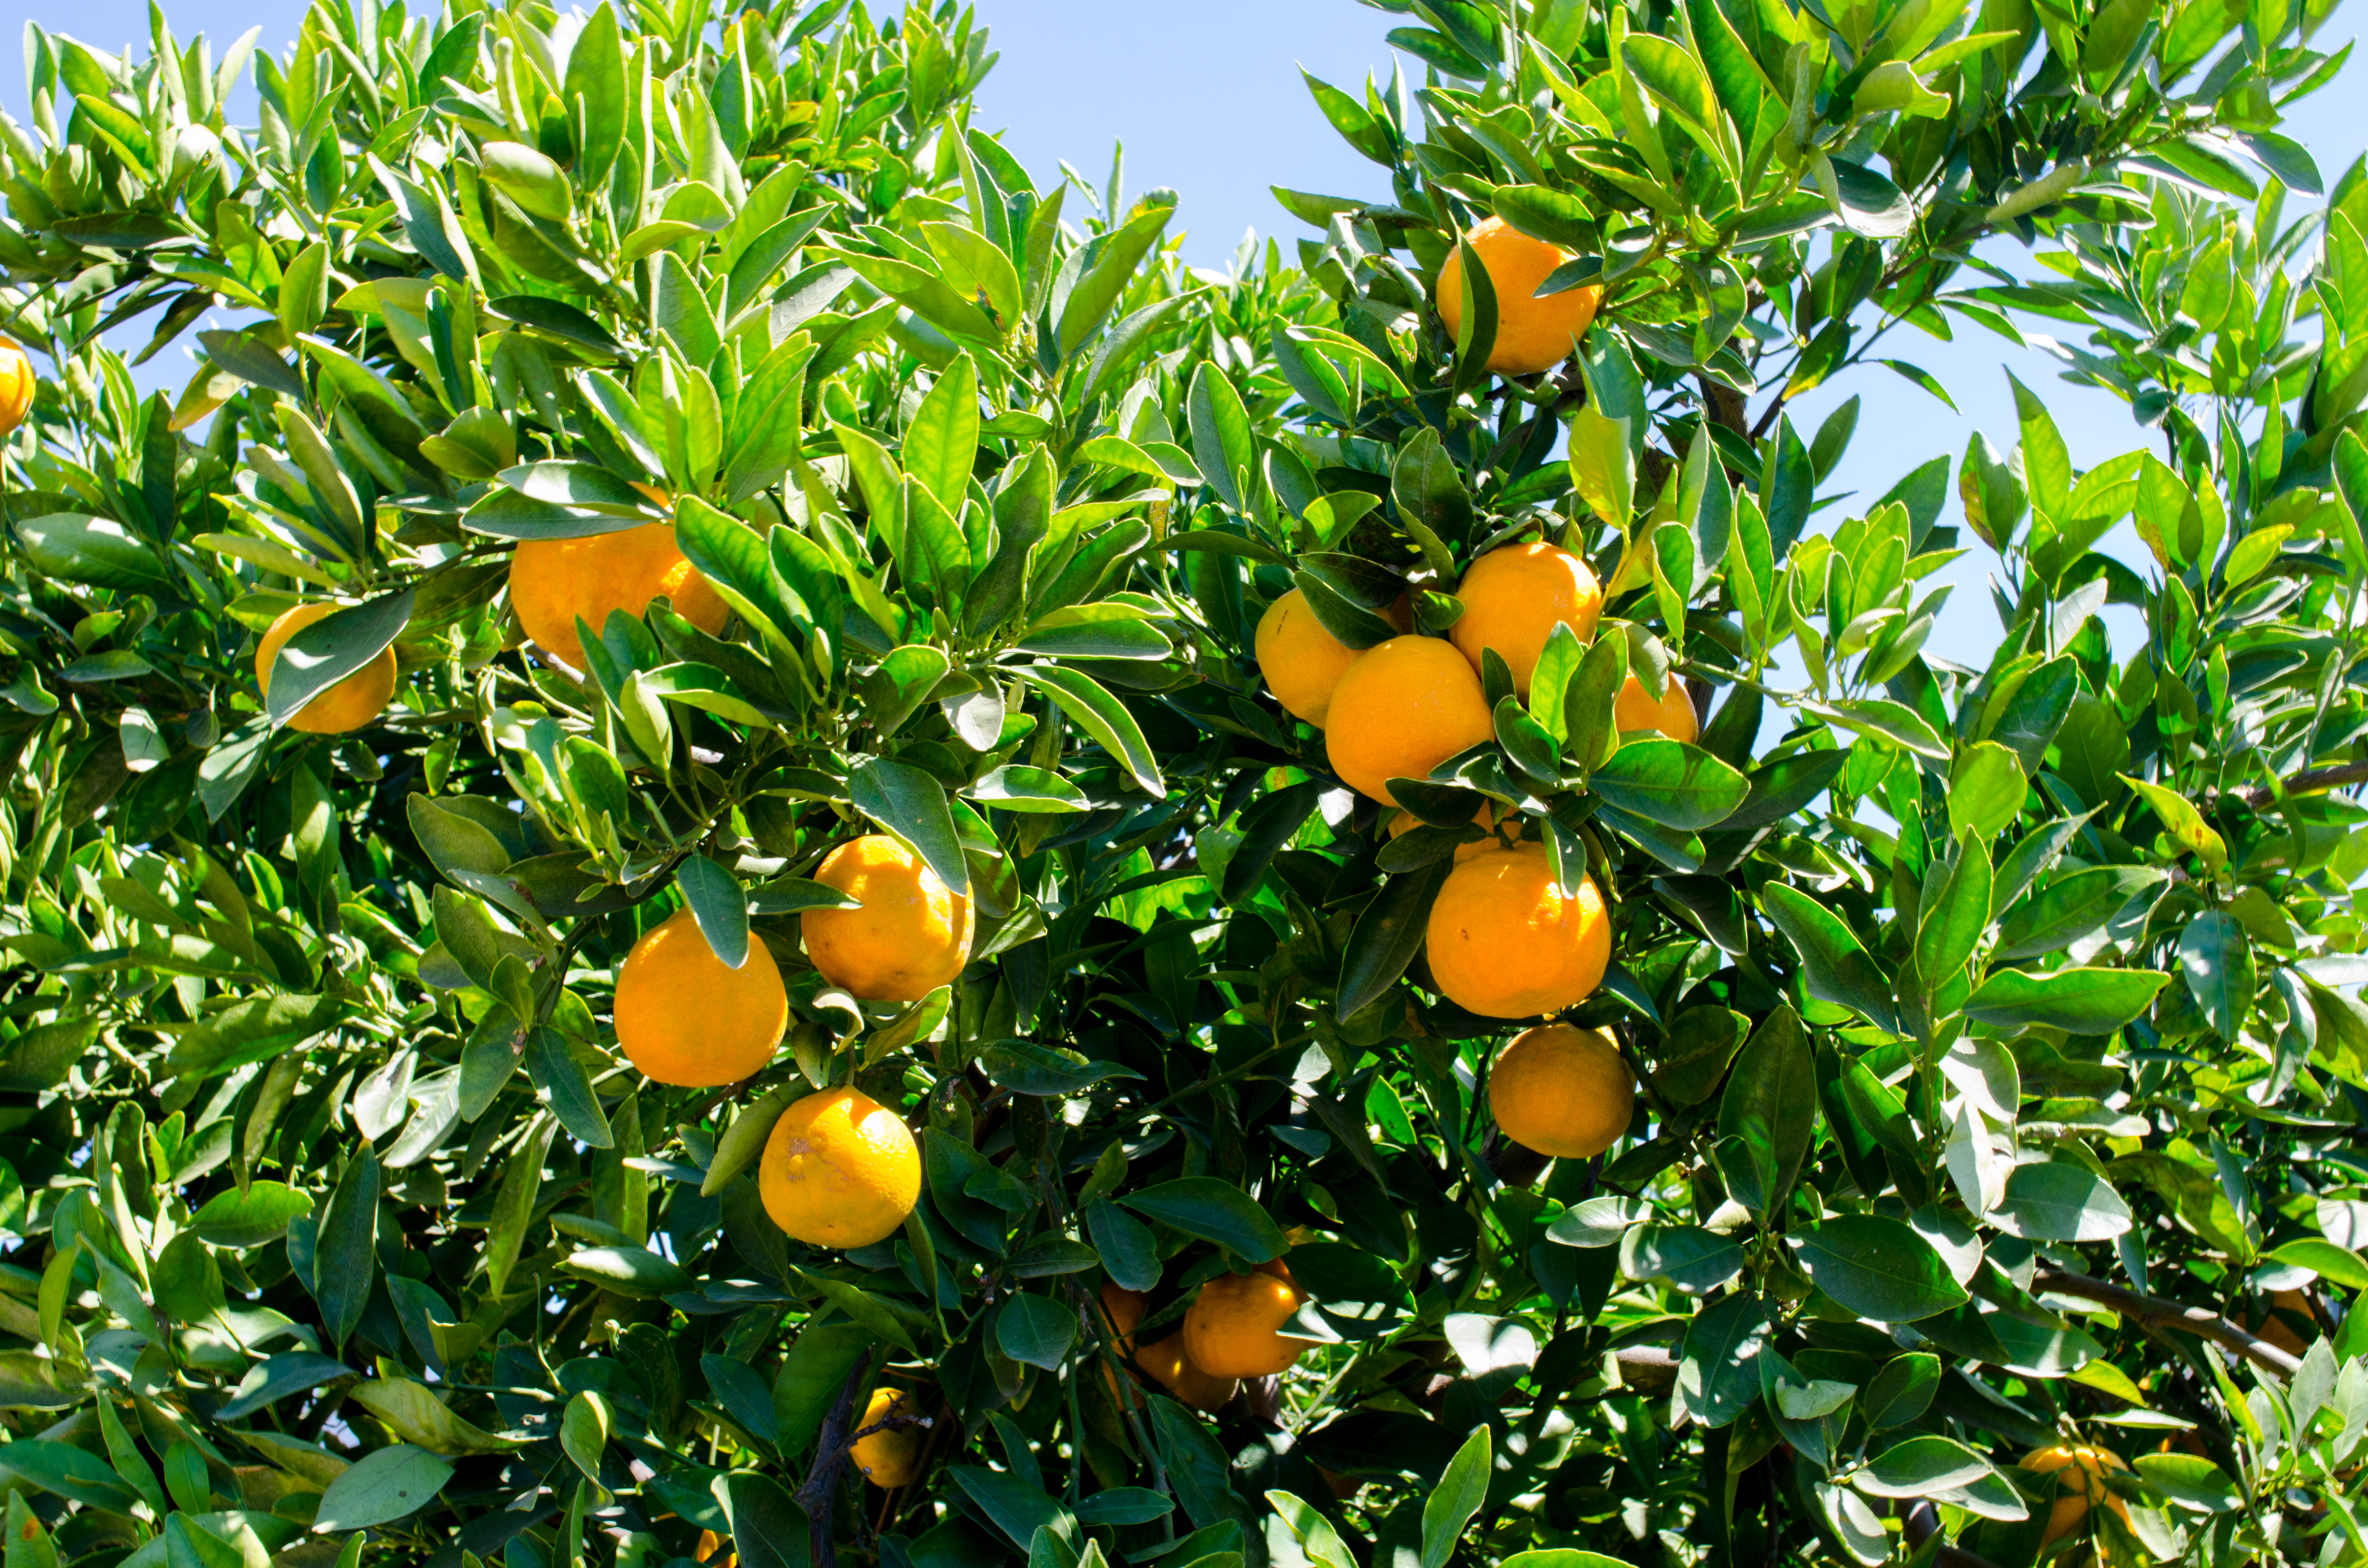 Golden Nugget Is A New Mandarin Variety Released Recently By The Ucr Citrus Collection It Was Developed As Seedless Fruit Which Eliminates